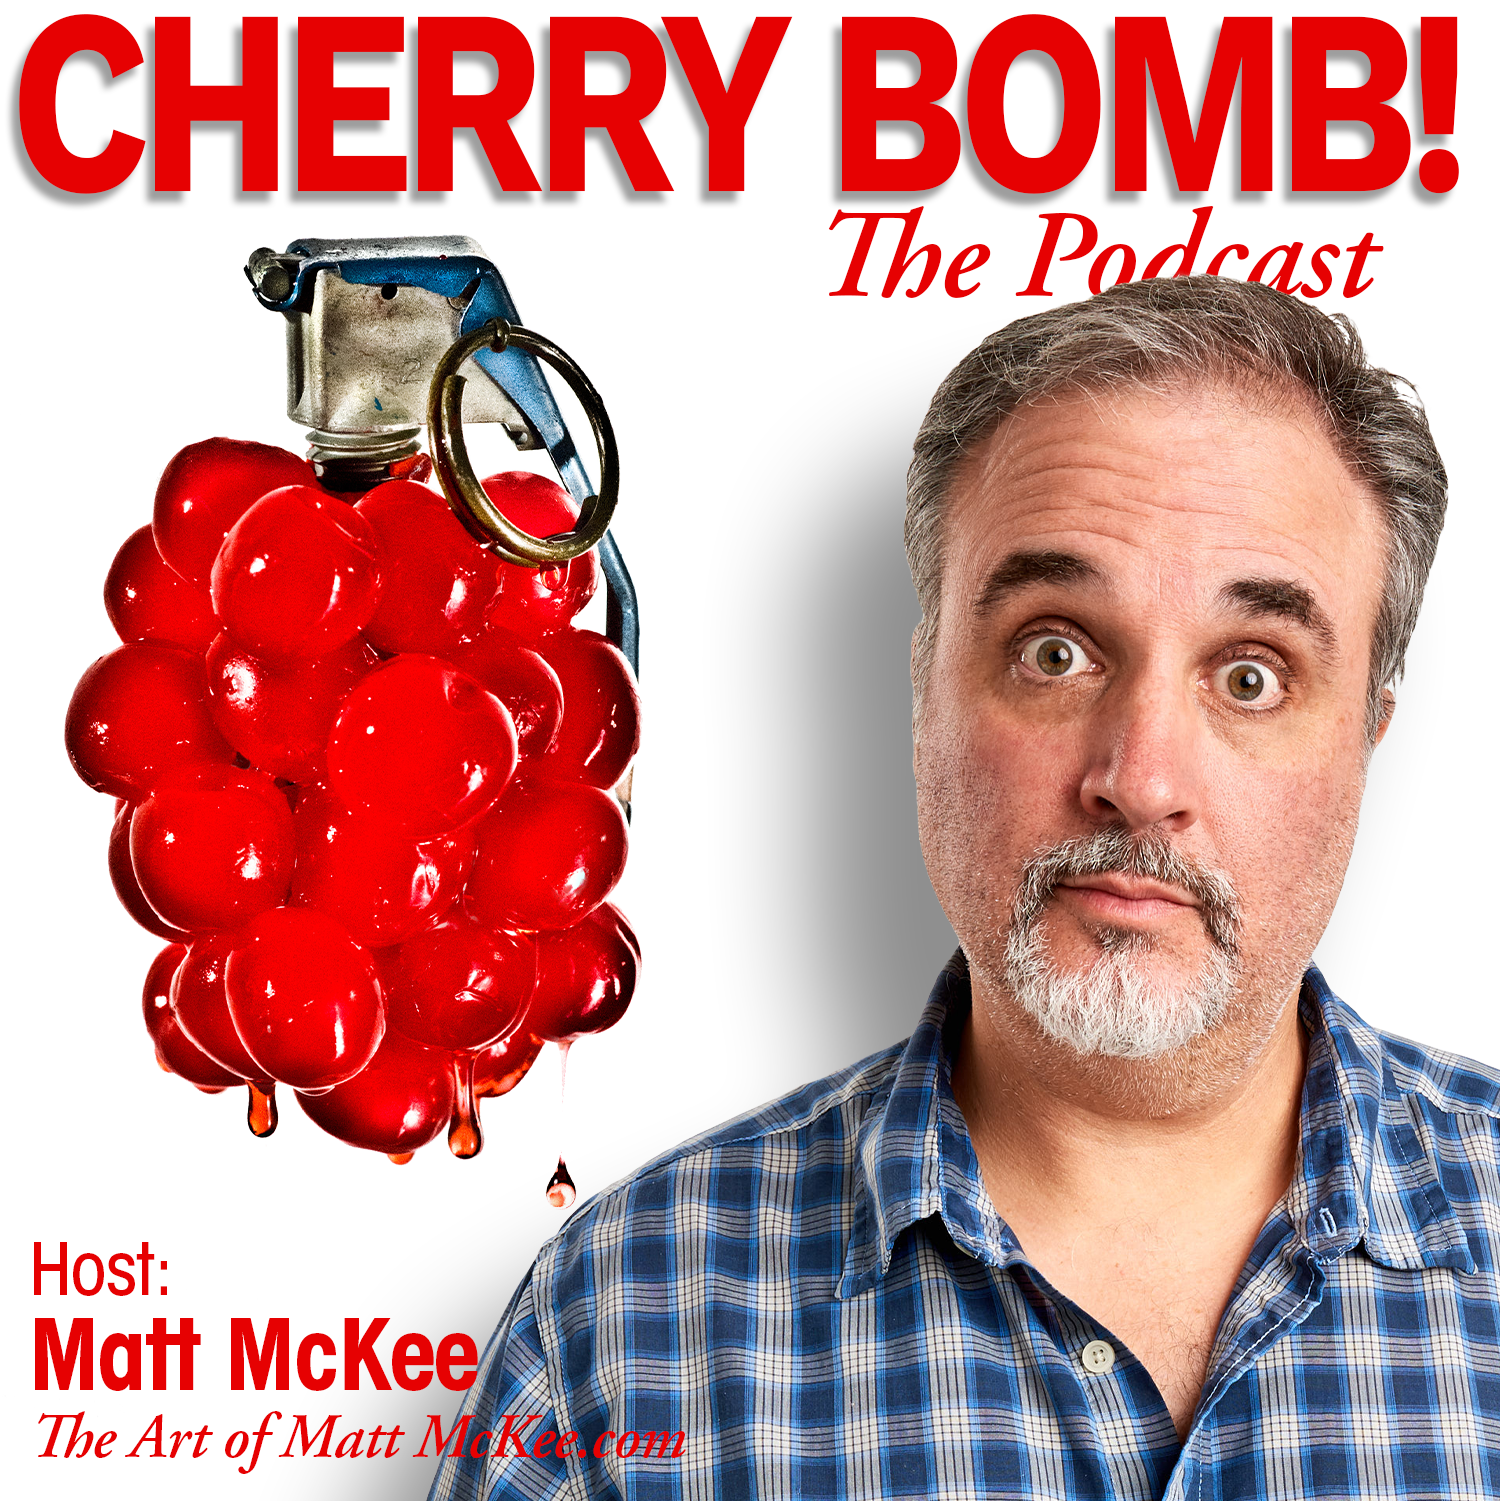 Your humble host of Cherry Bomb! The Podcast